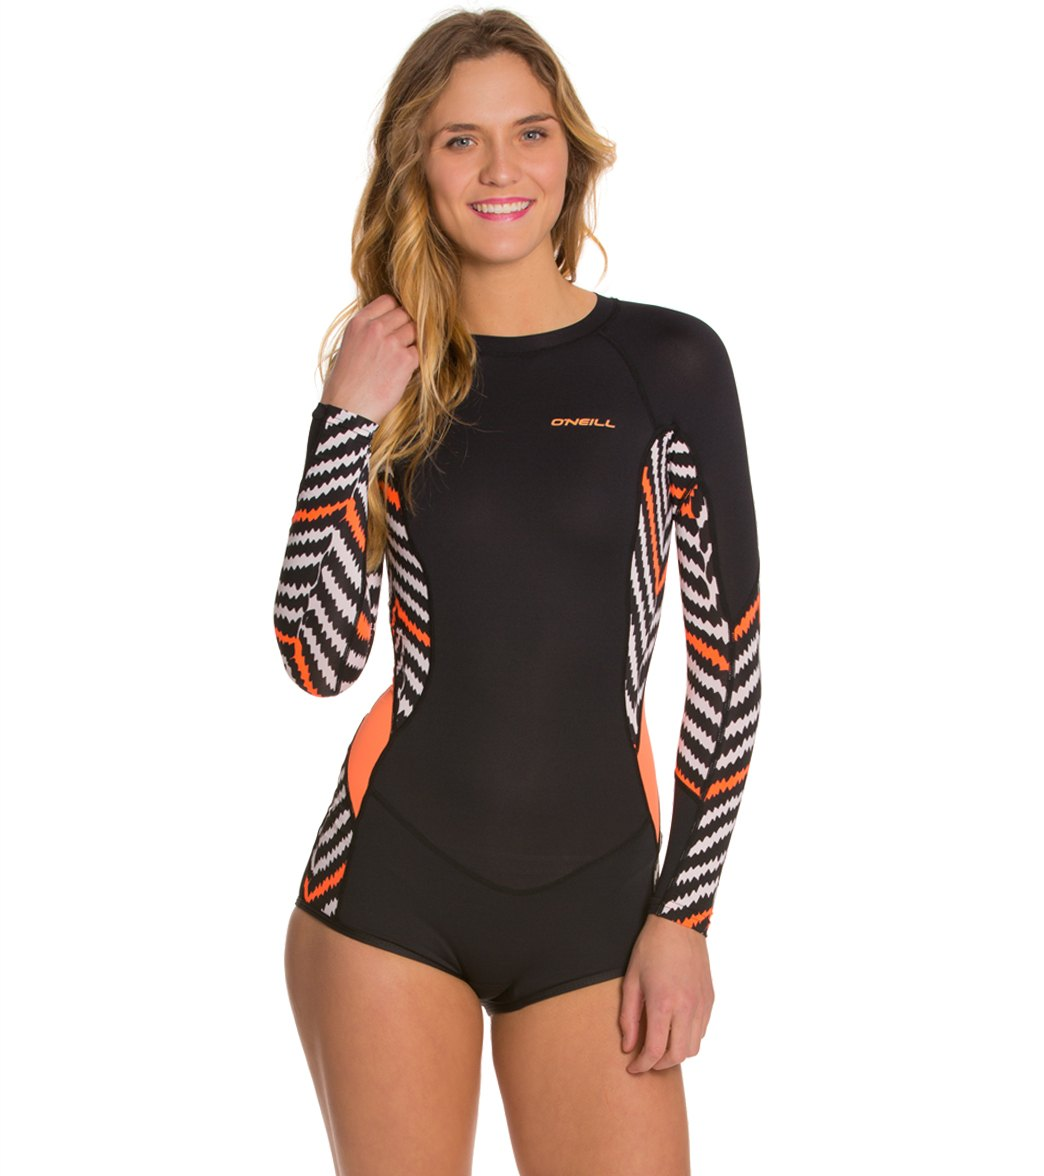 O Neill Women S Skins Long Sleeve Surf Spring Suit Wetsuit